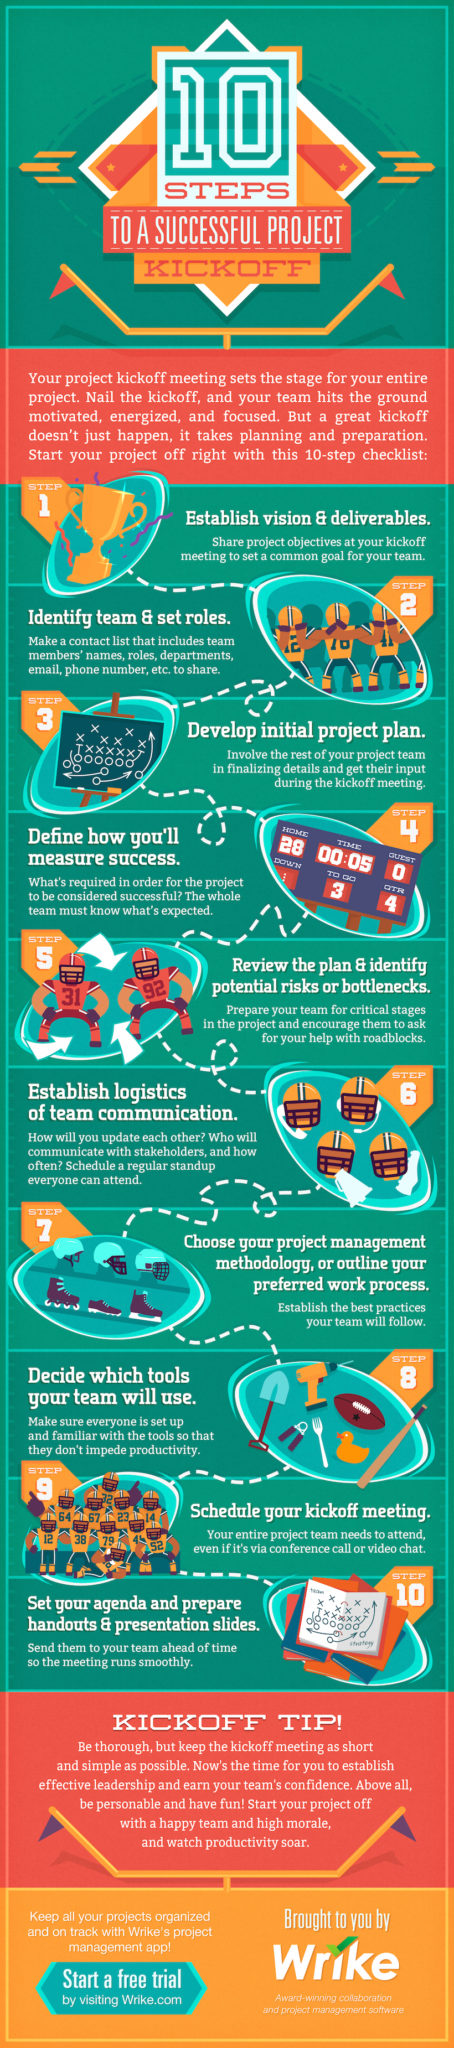 Infographic-Project-Kickoff-Checklist